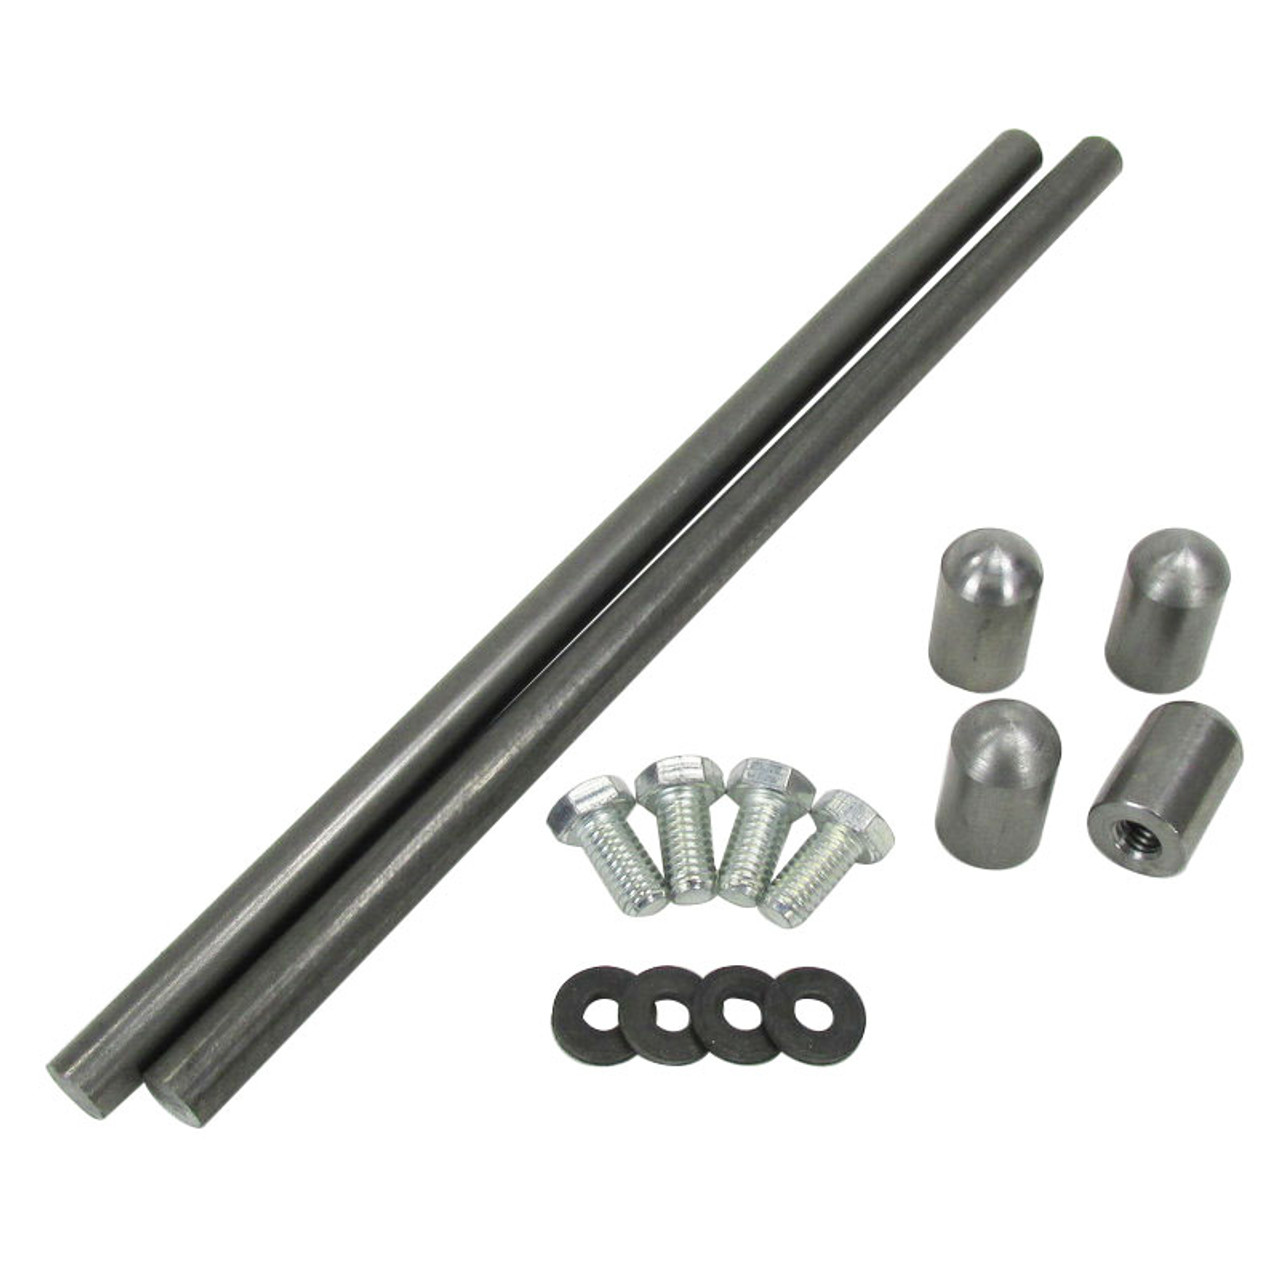 Rear Fender Strut Kit - Steel with Bungs and Hardware, Universal